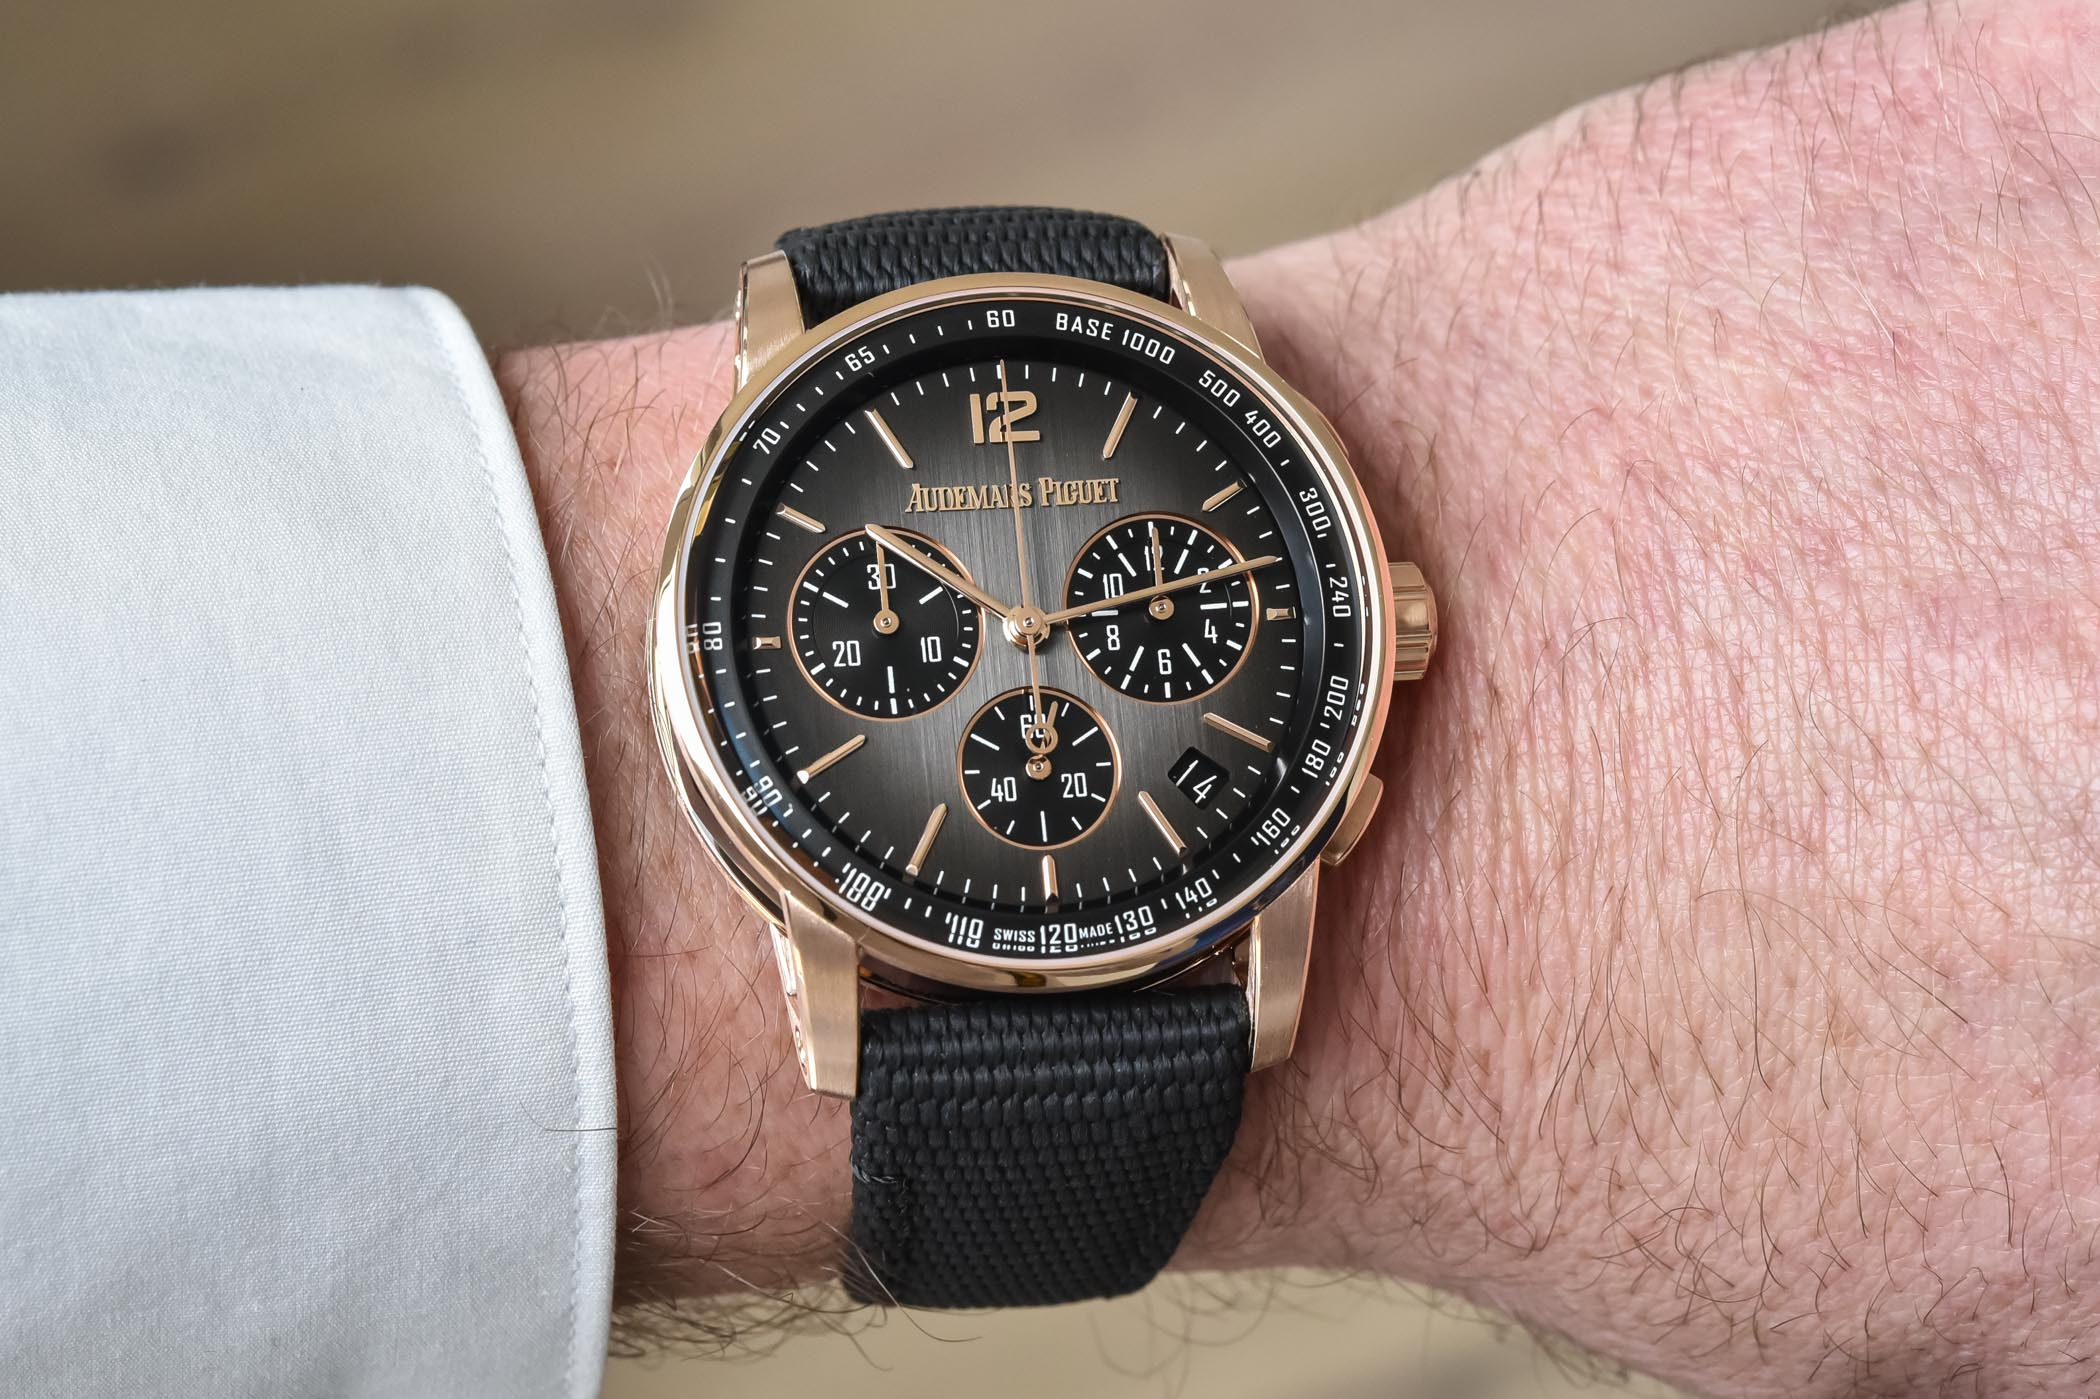 Code 11.59 by Audemars Piguet Selfwinding Chronograph Gold and Ceramic - 26393NR.OO.A002CA.01